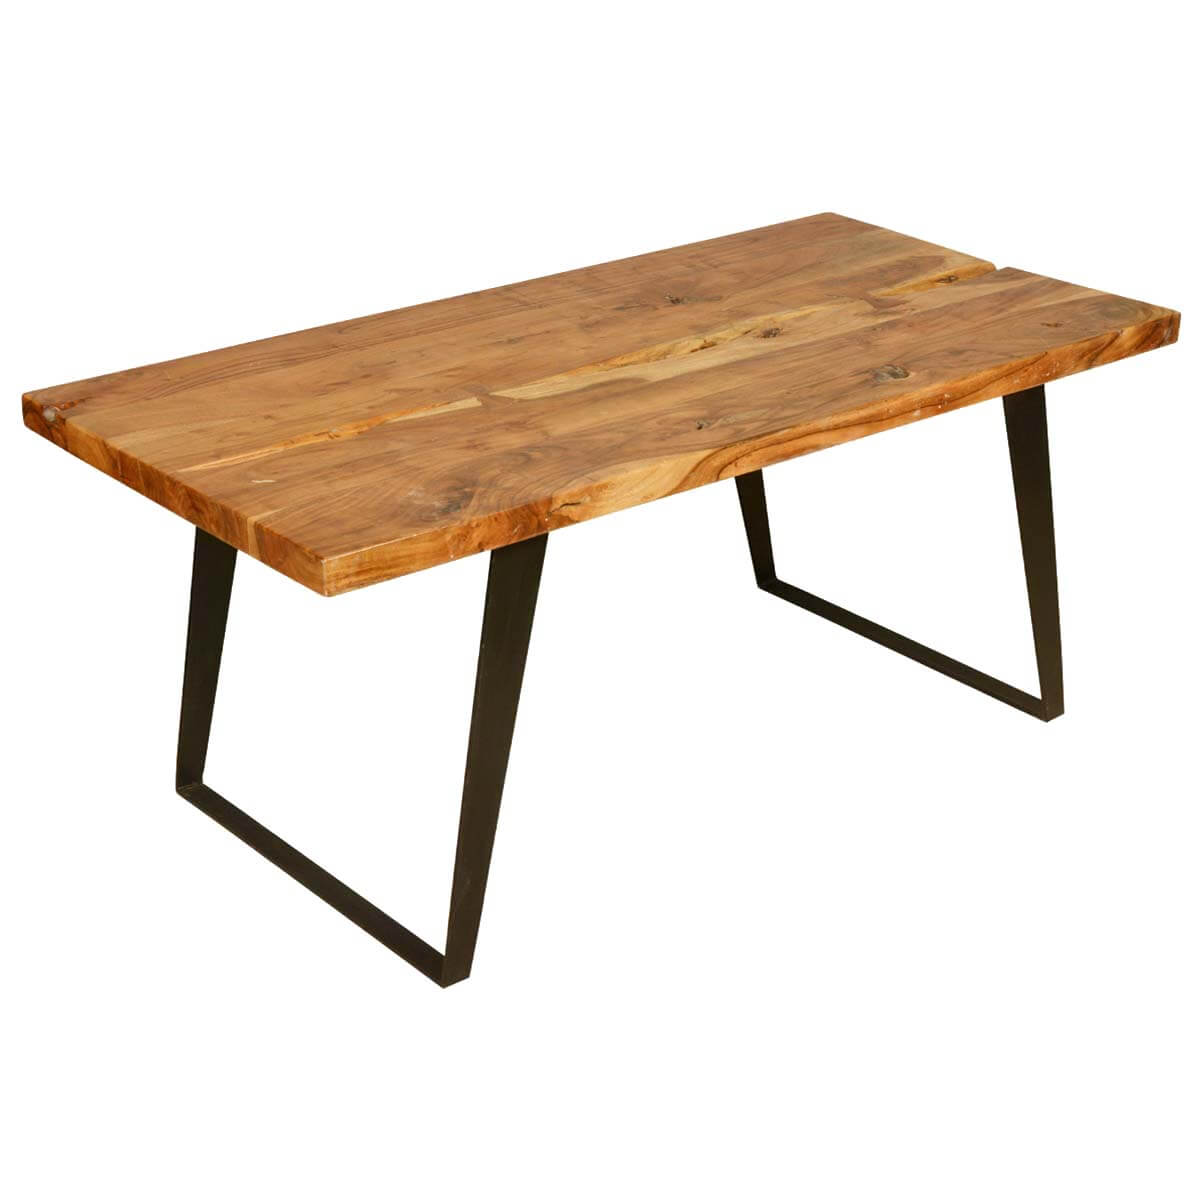 Hankin modern rustic solid wood industrial style dining table for New style dining table